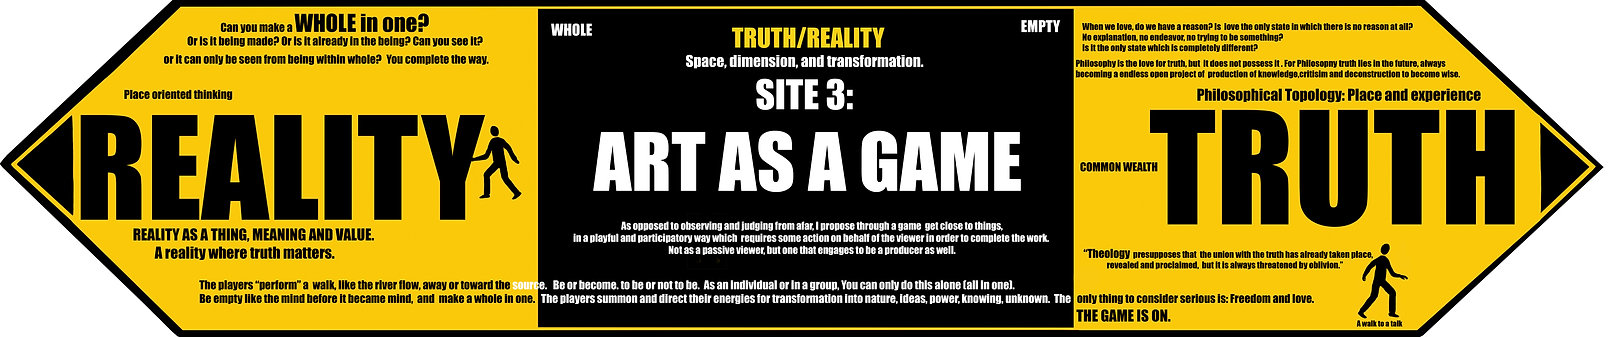 SITE 3 ART1as game. whole 3.jpg